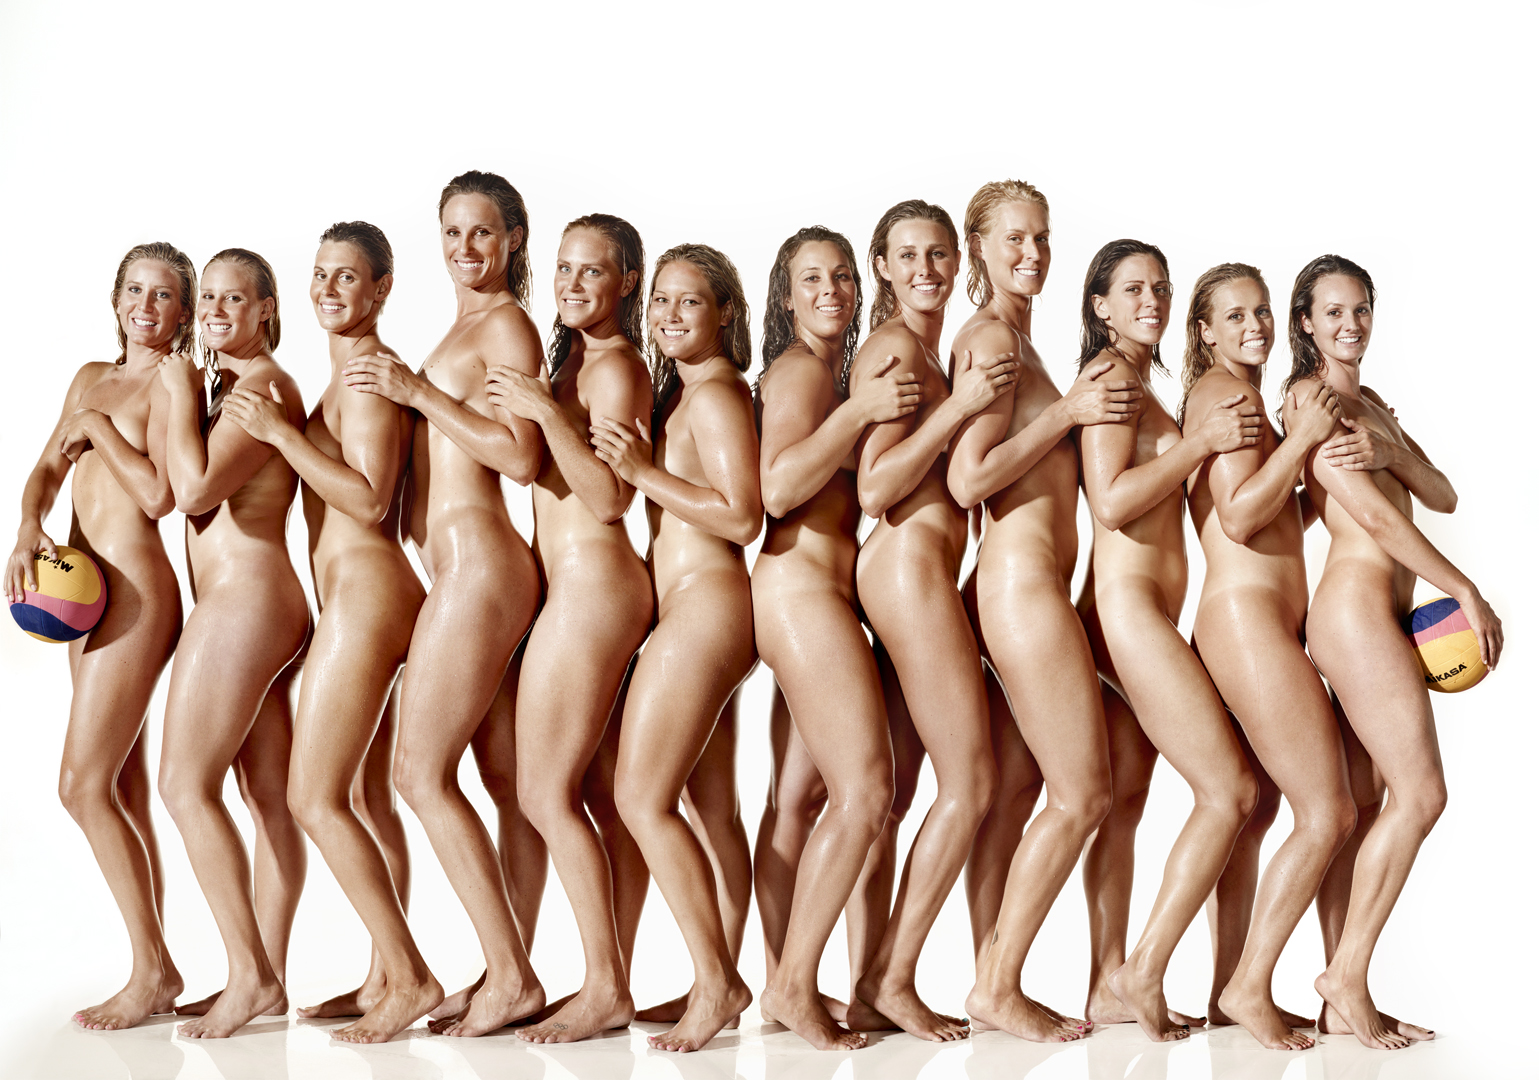 The USA Women's Water Polo team. Photo by Art Streiber for ESPN The